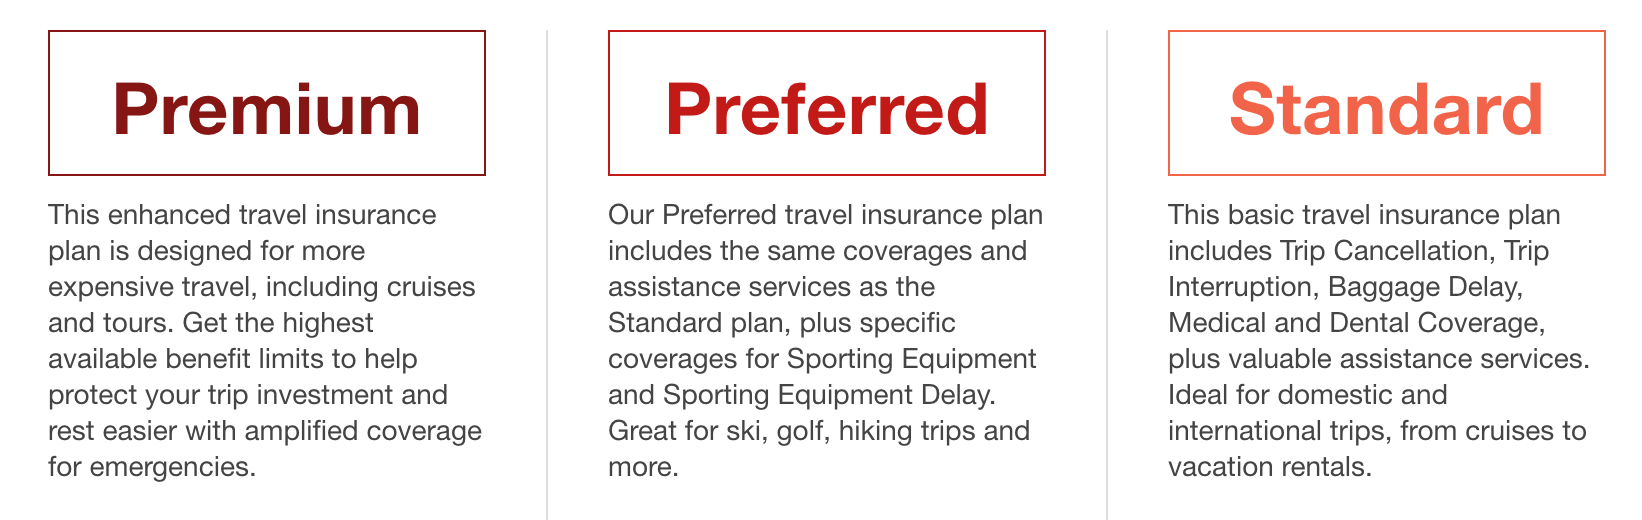 How to Buy Travel Insurance Online | Generali Global Assistance